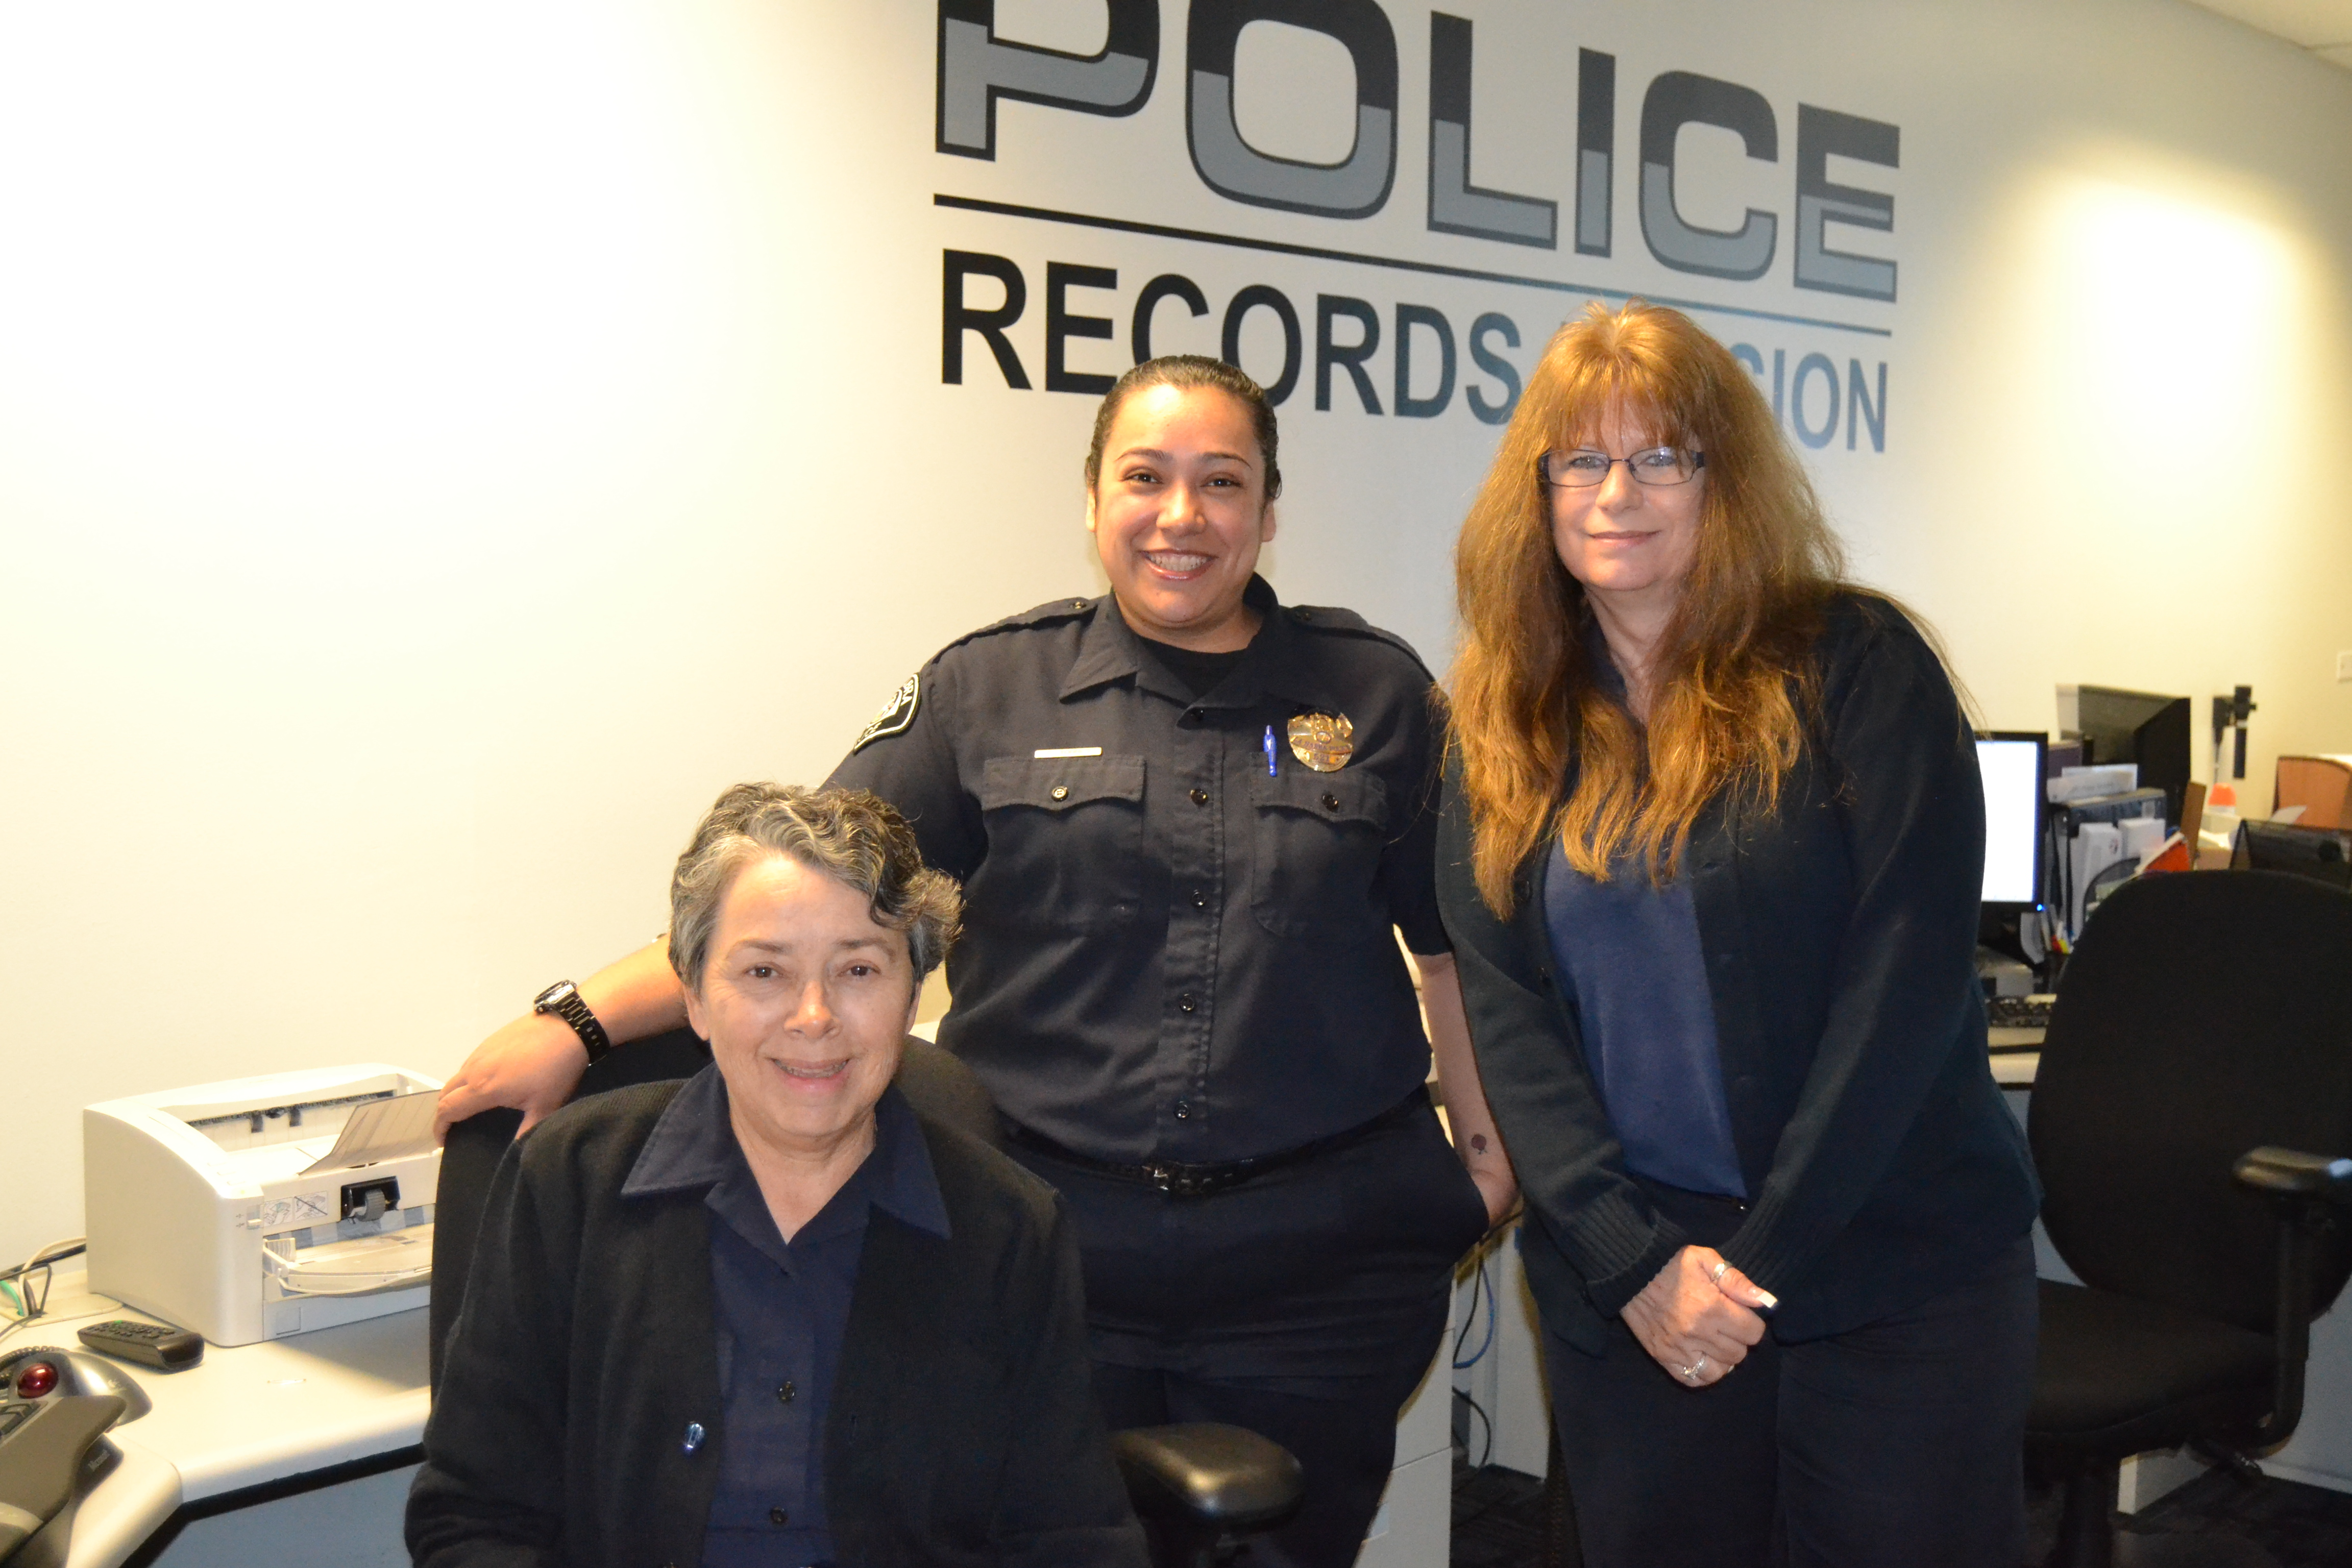 Police Records Specialists